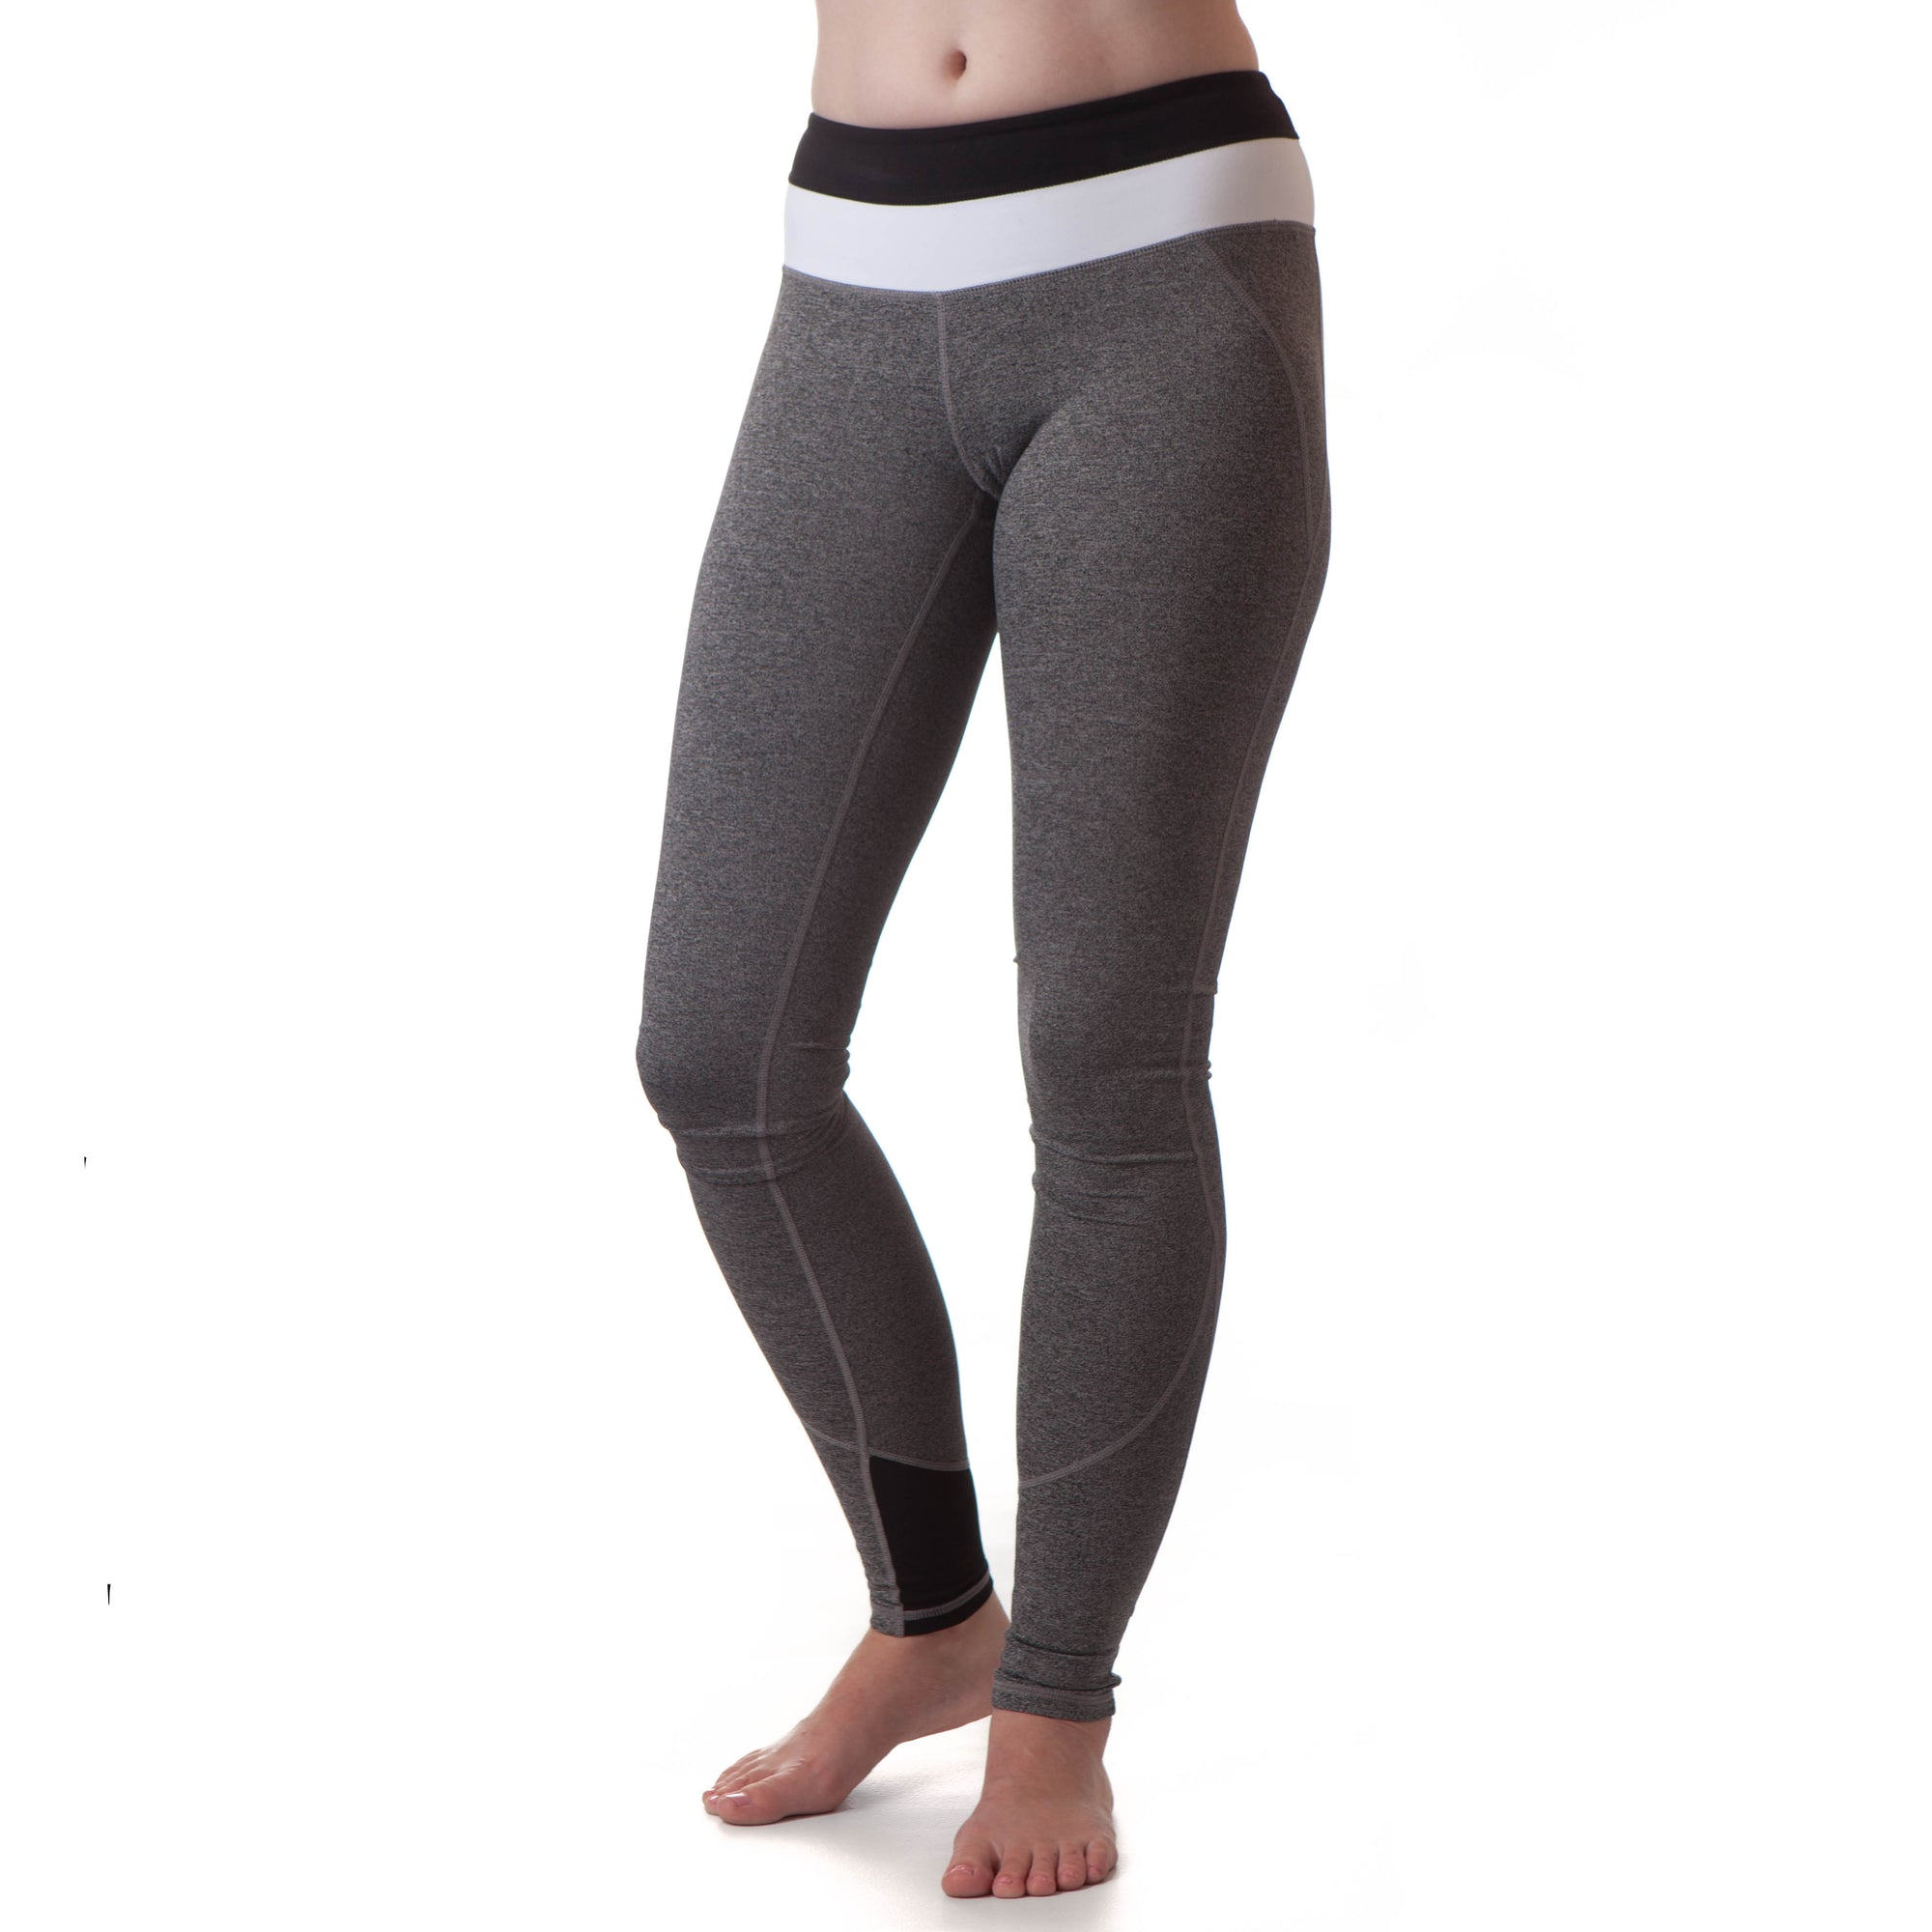 Extra Long Yoga Pants for Tall Women (Black/White) - Kindfolk Athletics